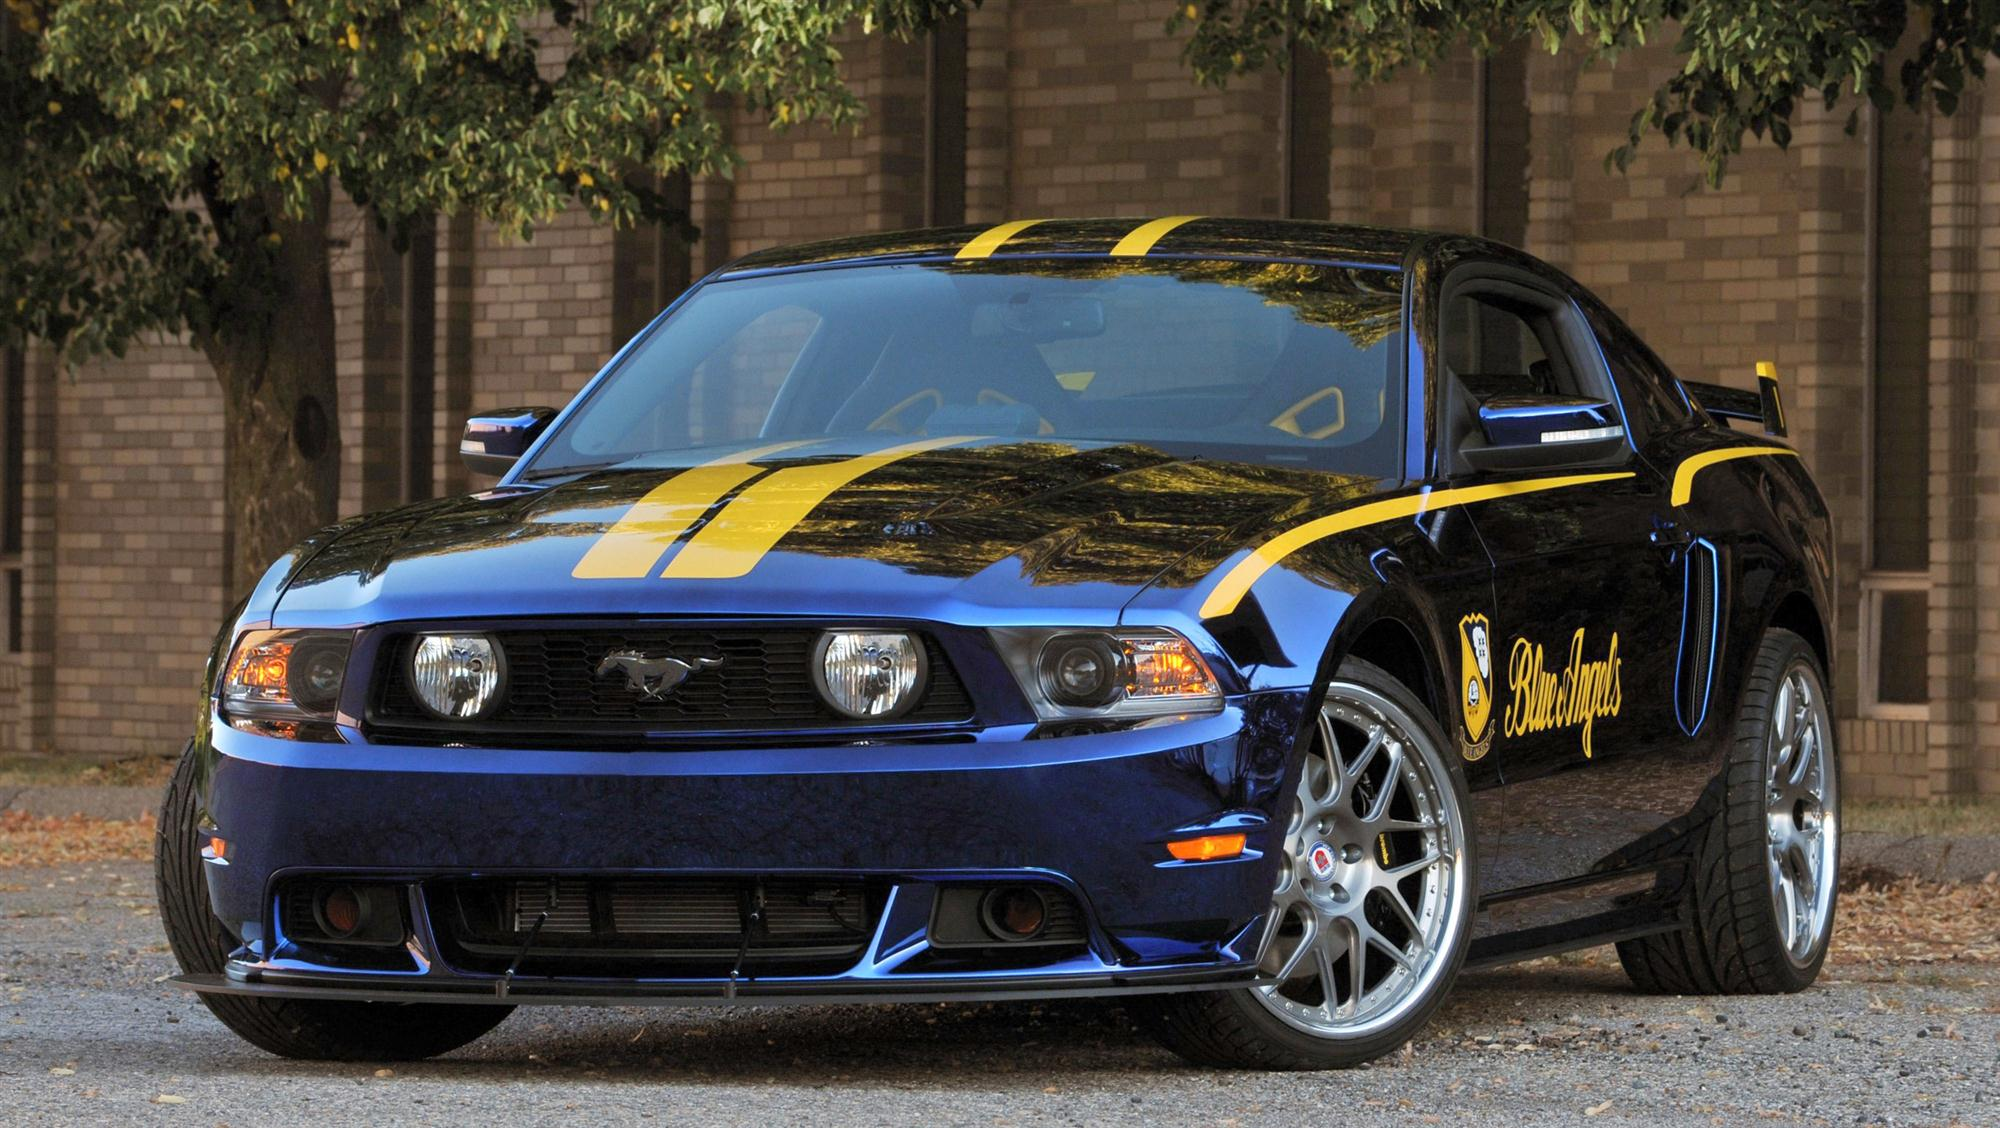 2012 Ford Blue Angels Mustang Gt Fetches 400 000 At Auction